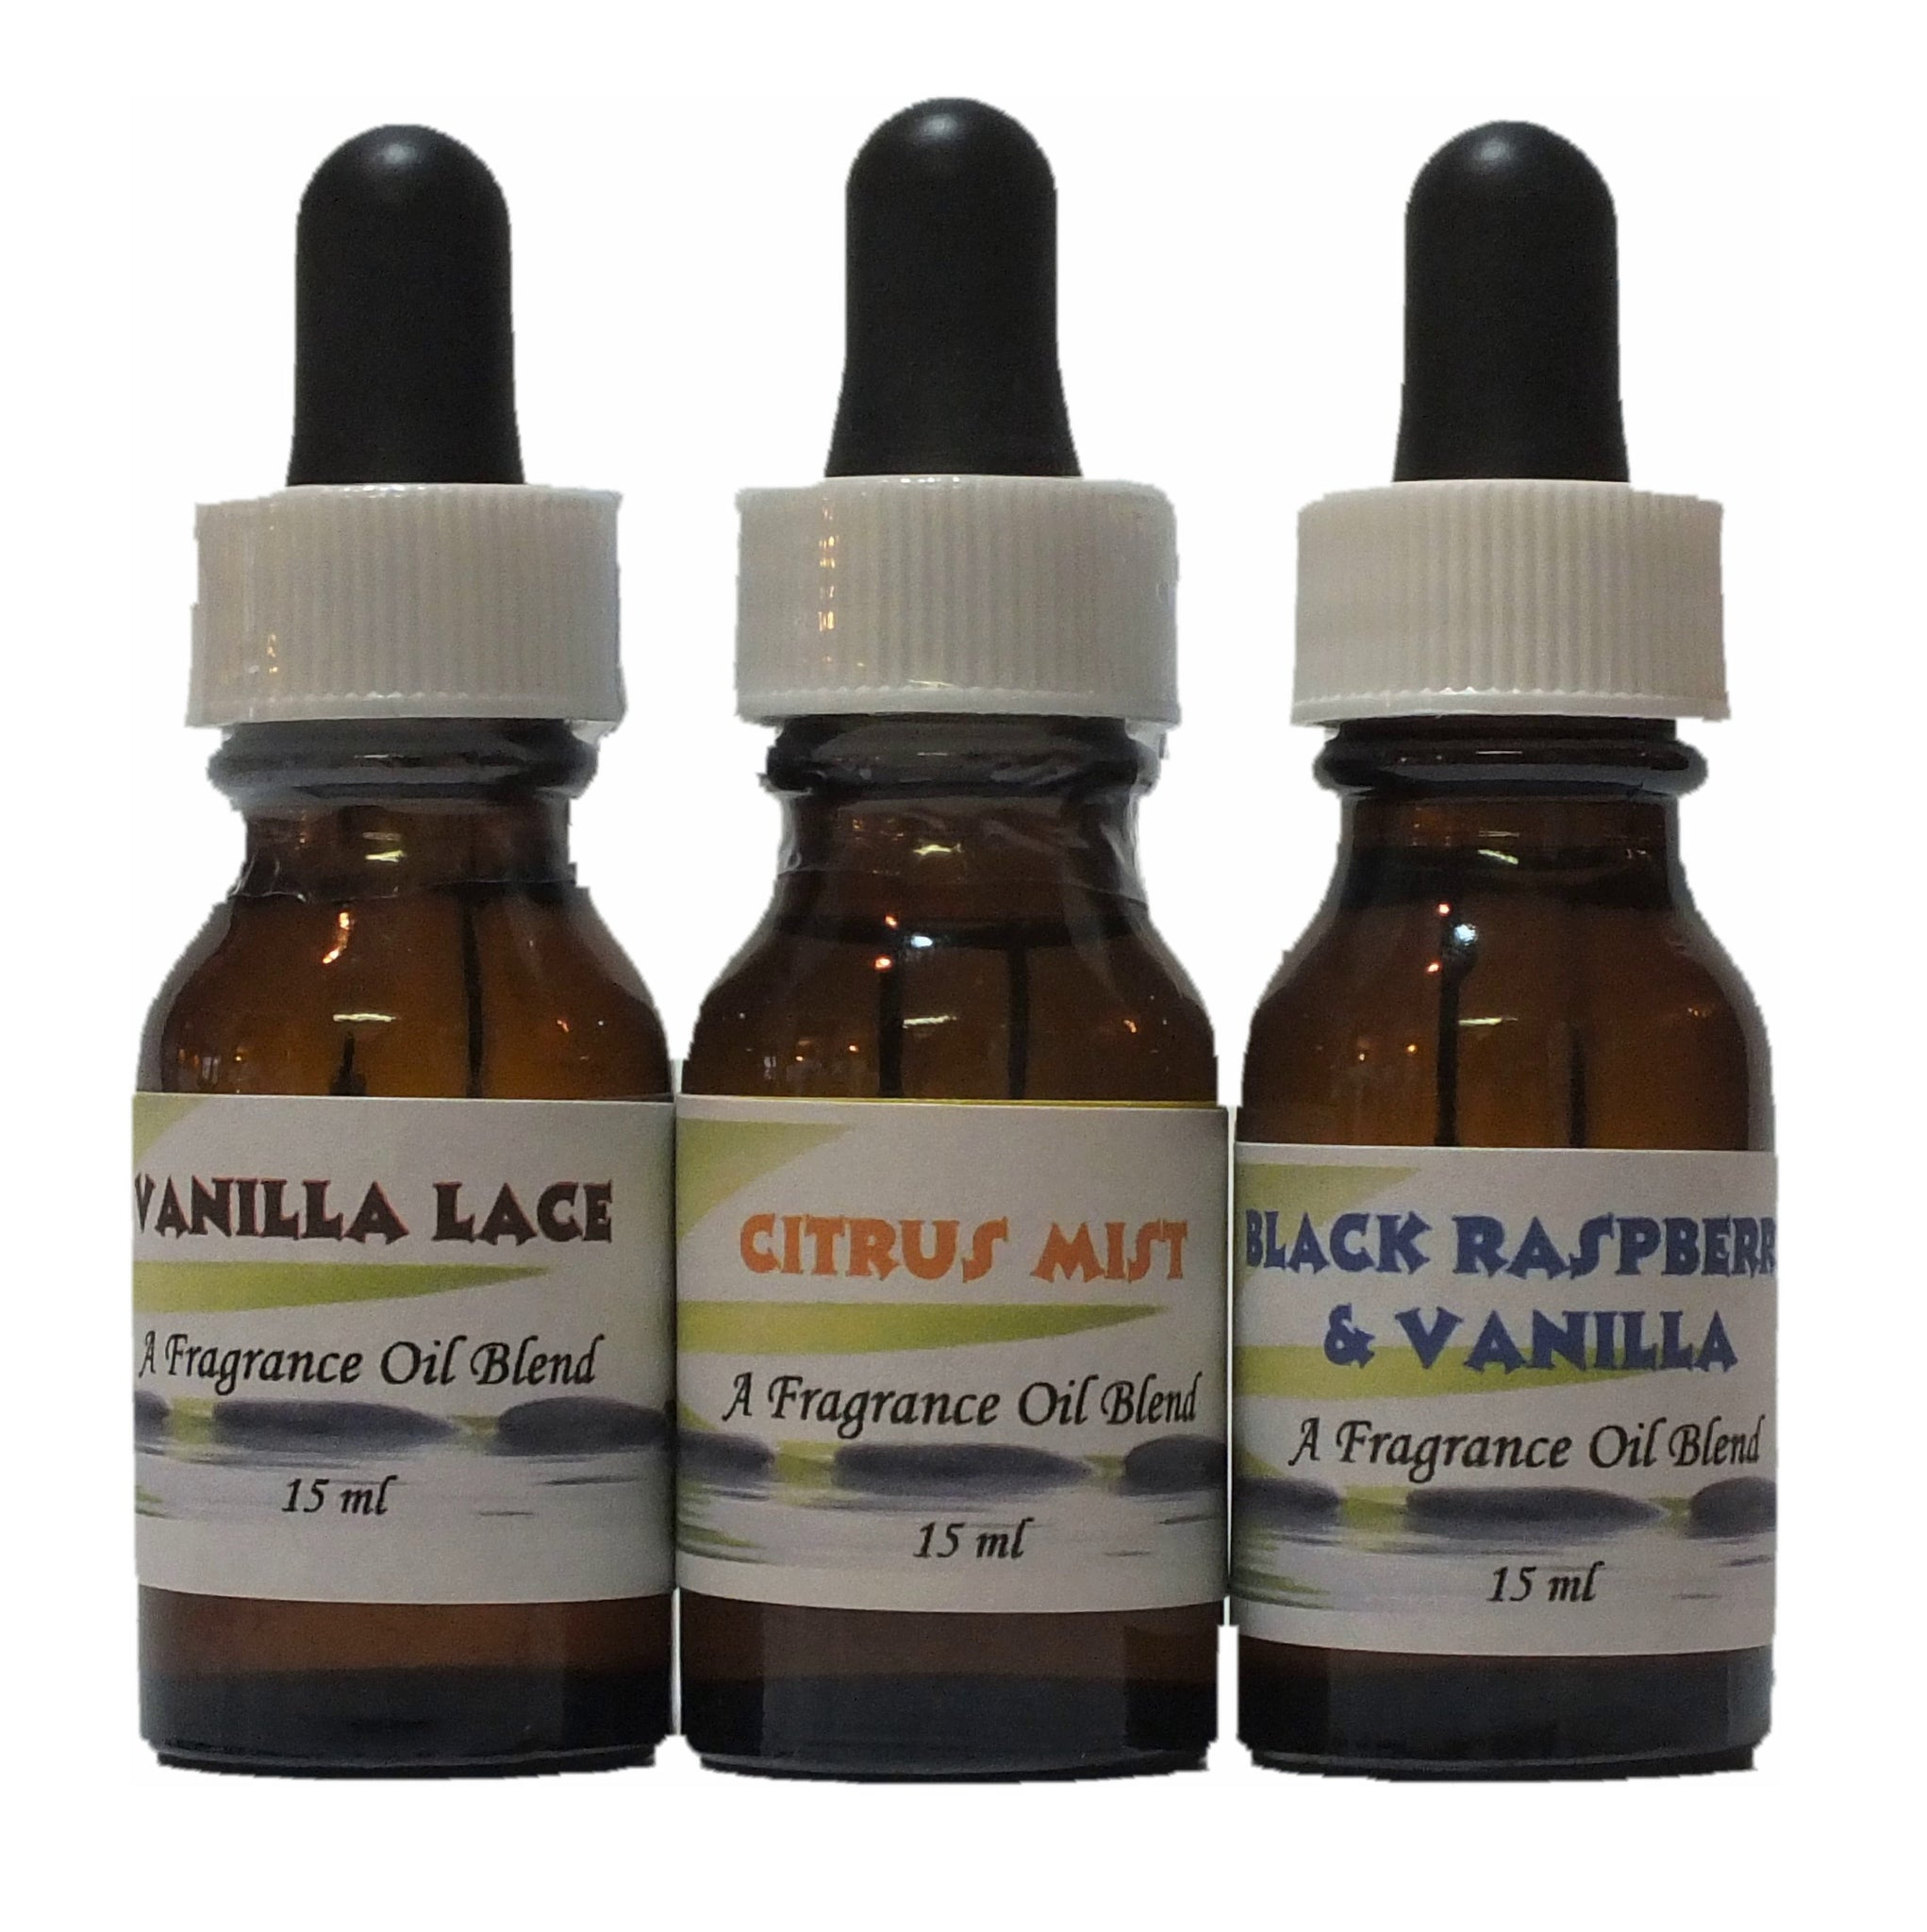 Fragrance Oil - 3 Bottles - Vanilla Lace - Citrus Mist - Black Raspberry & Vanilla - 15 ml each